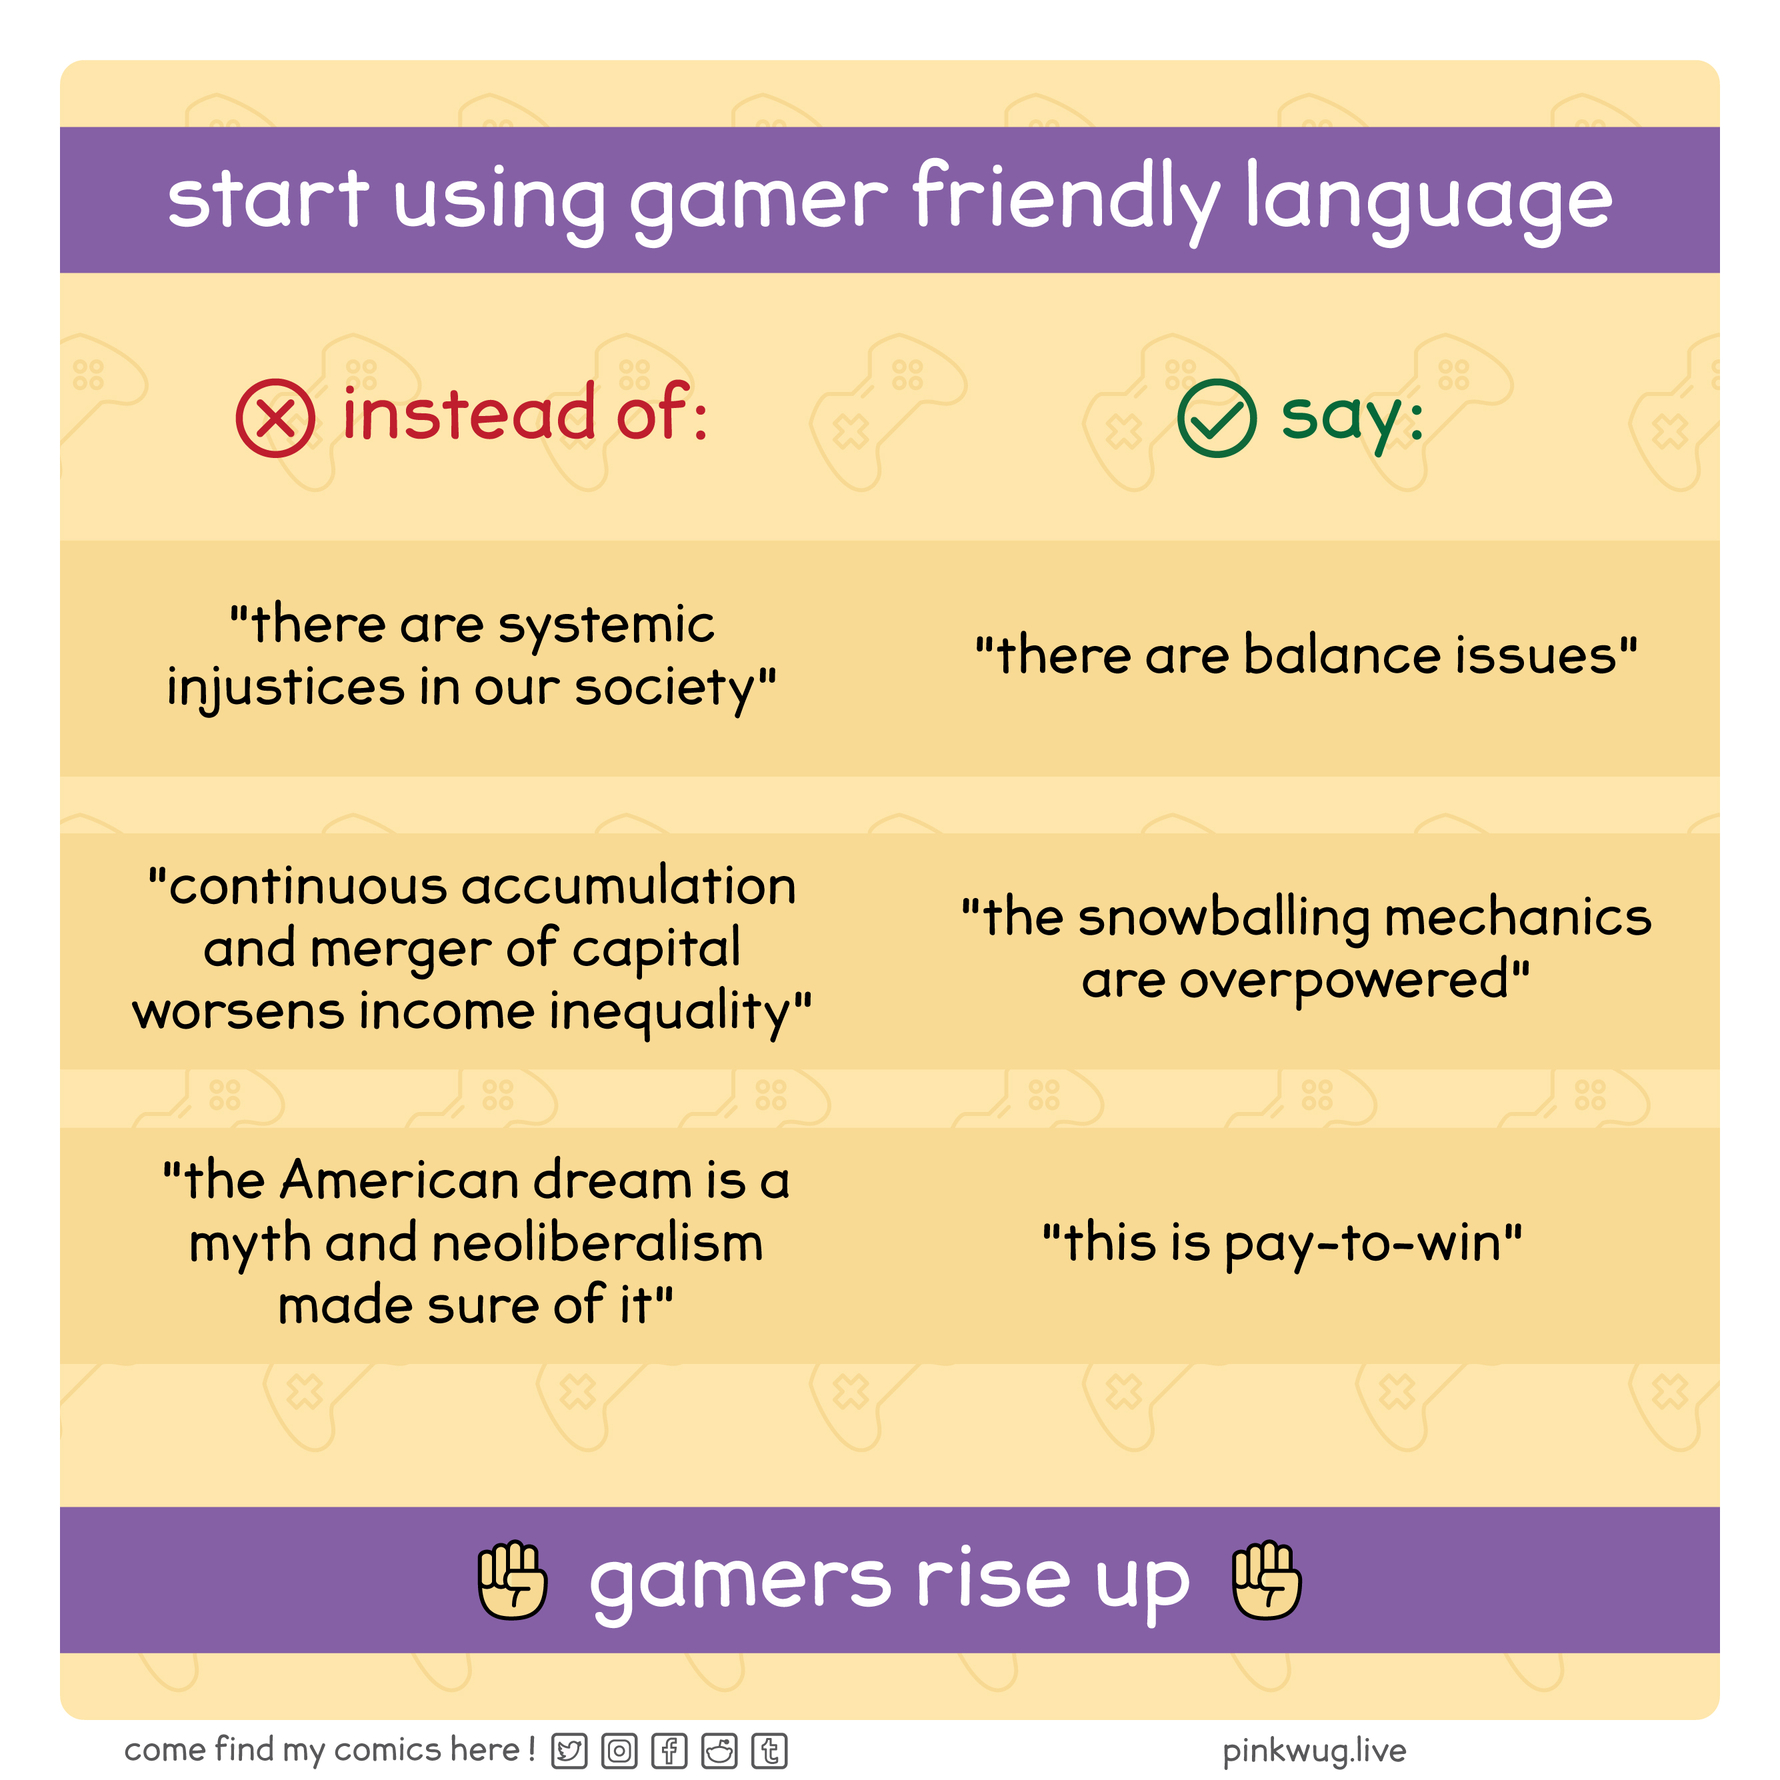 """pinkwug comic: Poster titled """"start using gamer friendly language""""  Instead of: """"there are systemic injustices in our society"""", """"continuous accumulation and merger of capital worsens income inequality"""", """"the American dream is a myth and neoliberalism made sure of it""""  Say: """"there are balance issues"""", """"the snowballing mechanics are overpowered"""", """"this is pay-to-win""""  Gamers rise up (with fist emojis)"""